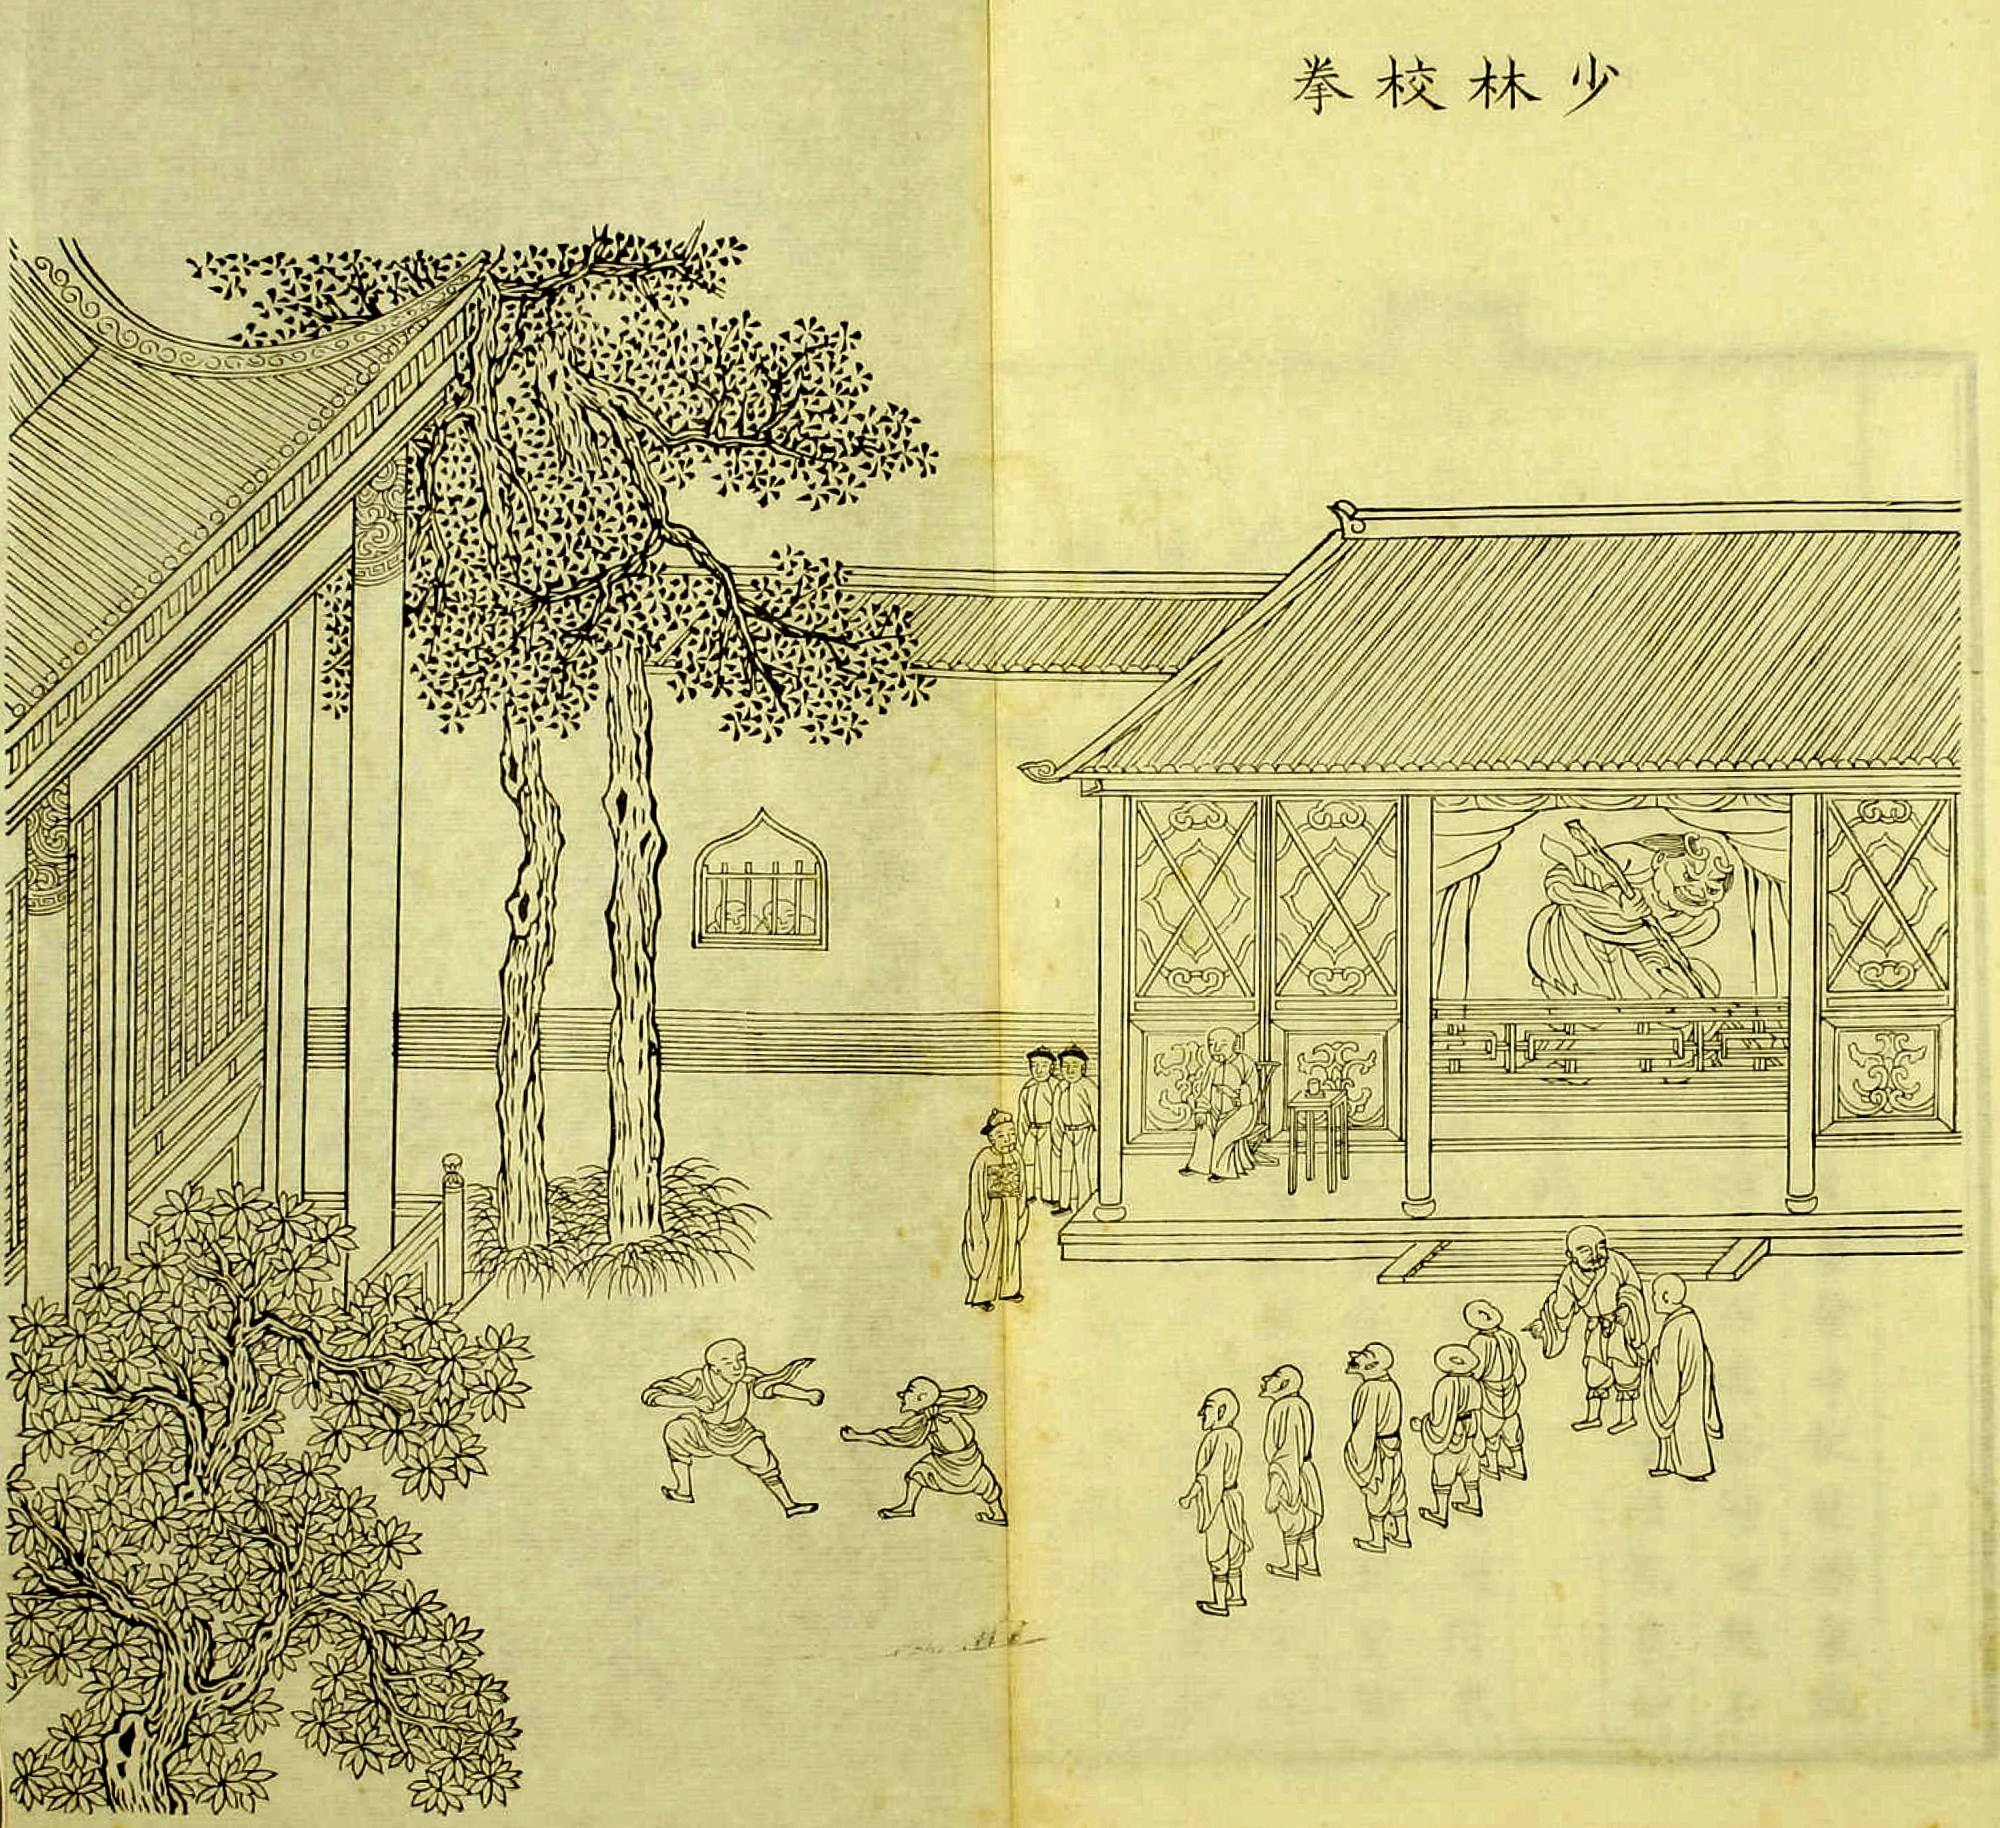 hight resolution of lin qing was a chinese government official who visited shaolin monastery in 1828 he subsequently published an illustrated book describing his travels